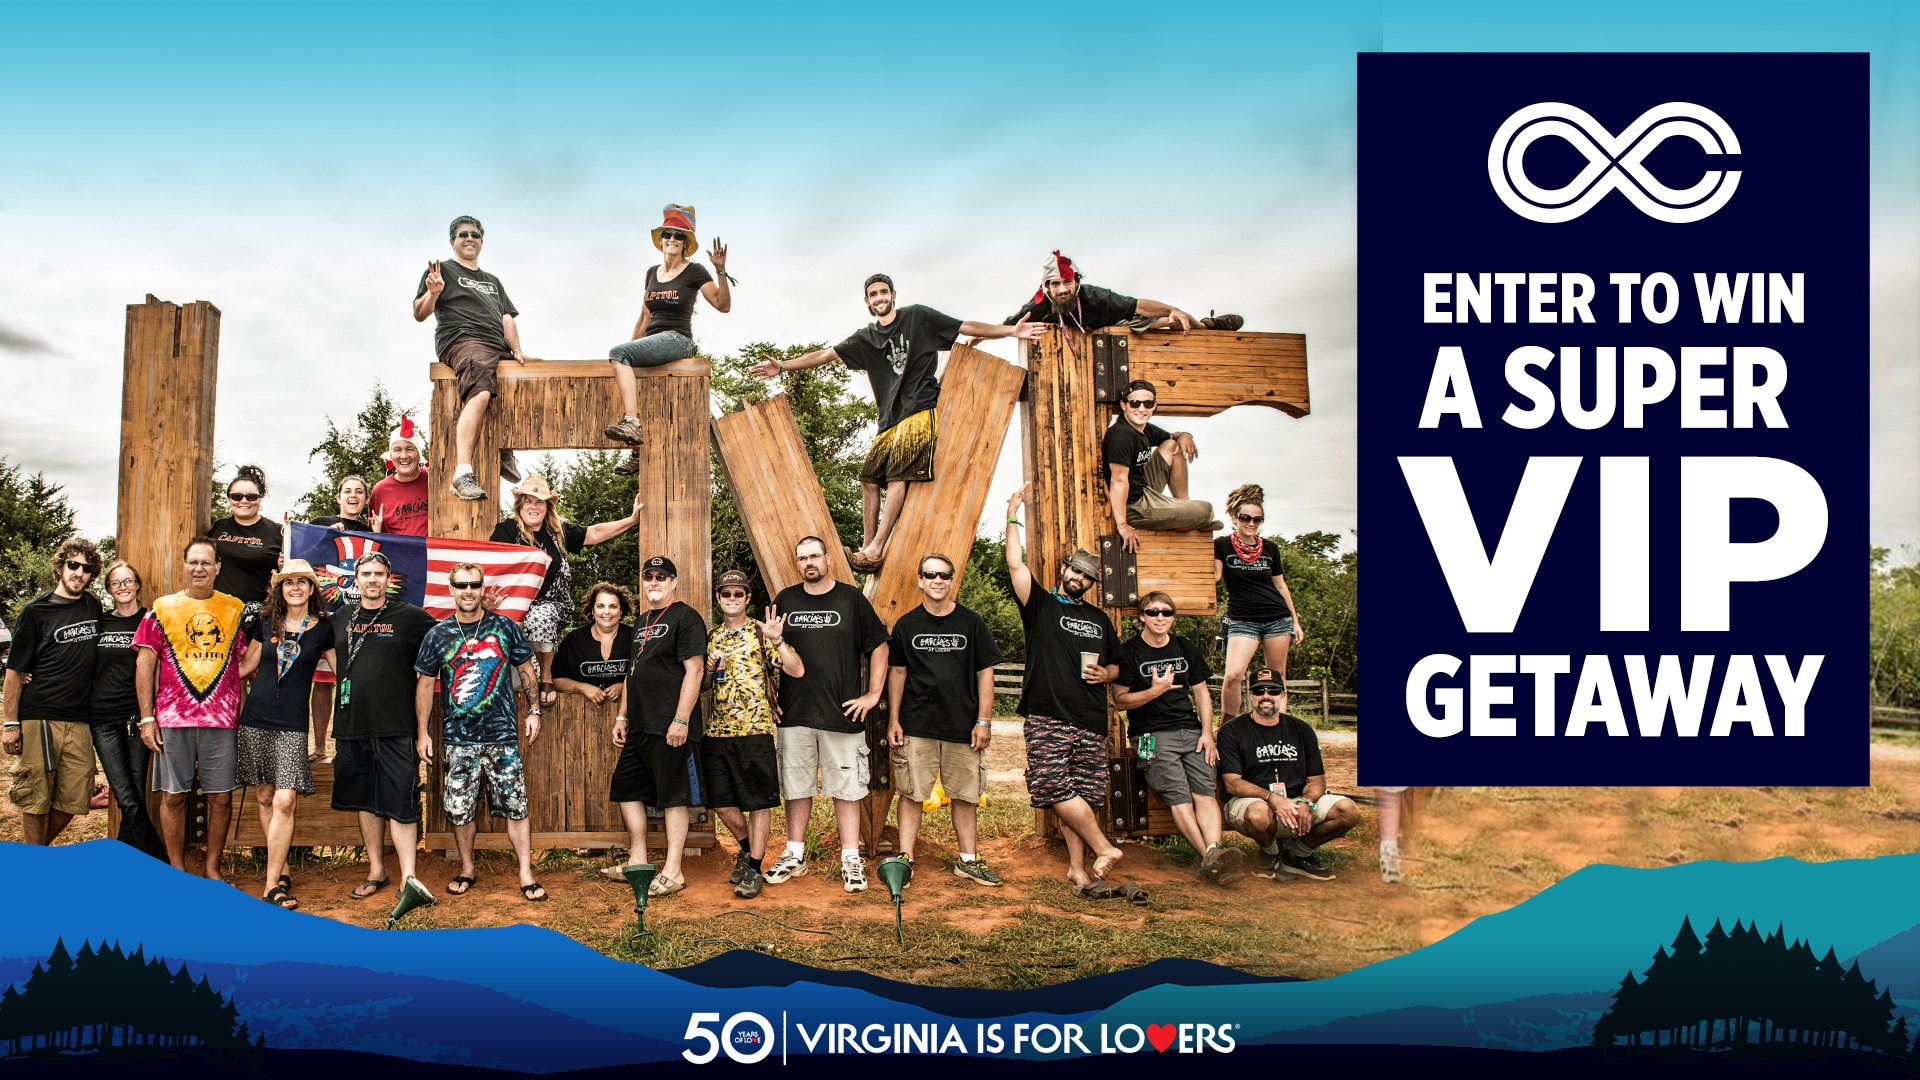 Win a Pair of SUPER VIP Passes with Car Camping to LOCKN'!